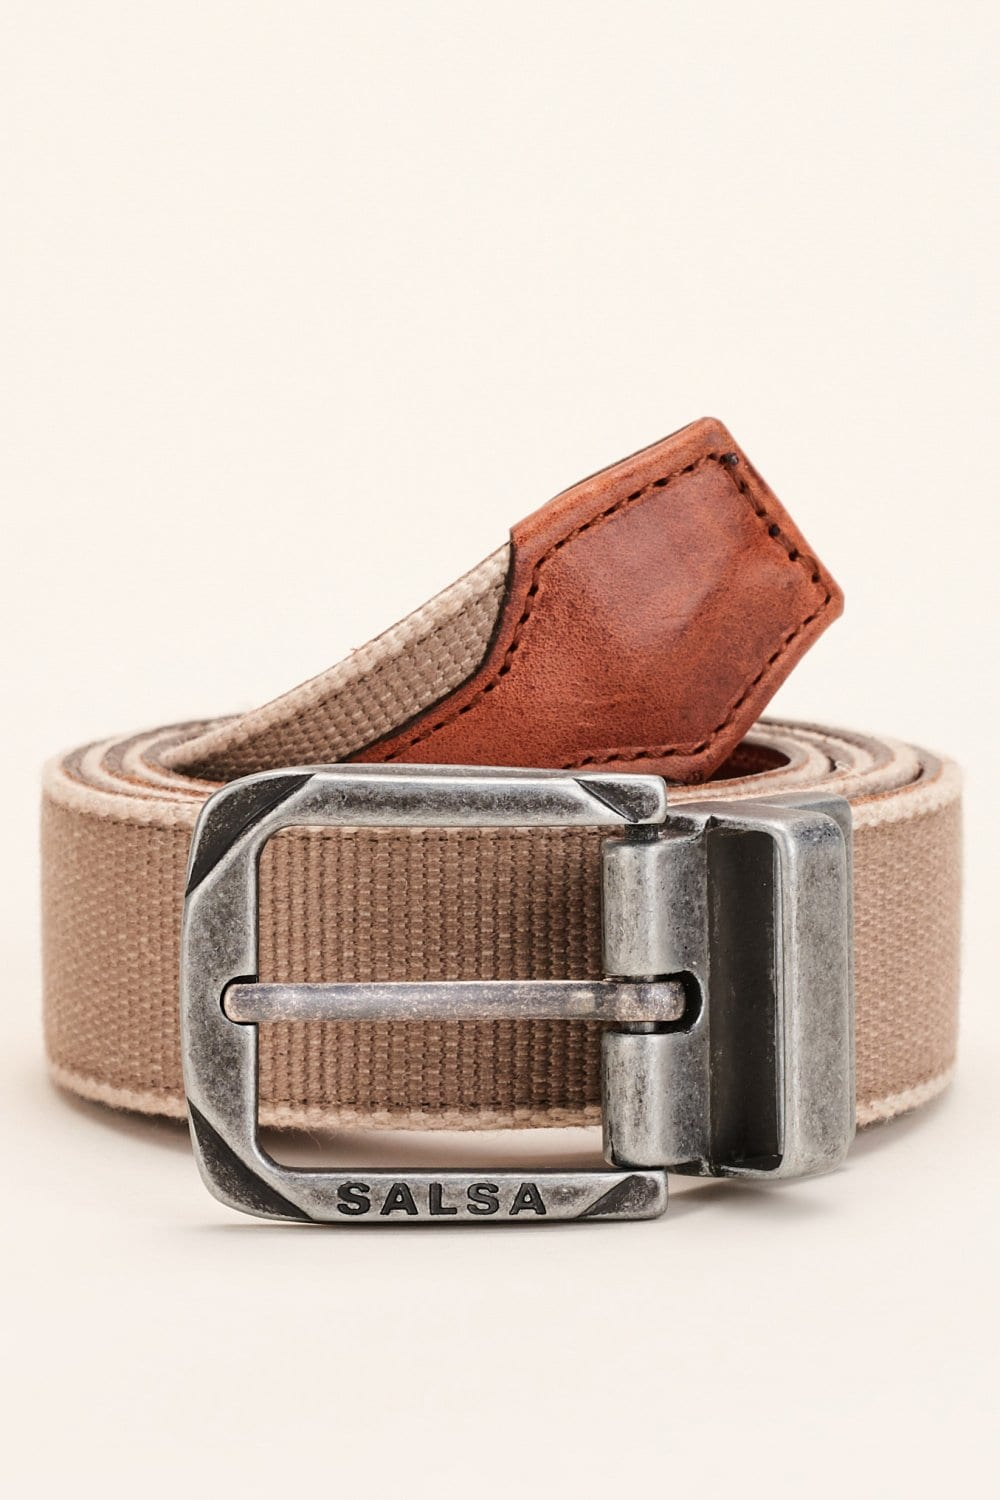 Reversible strap belt with leather - Salsa